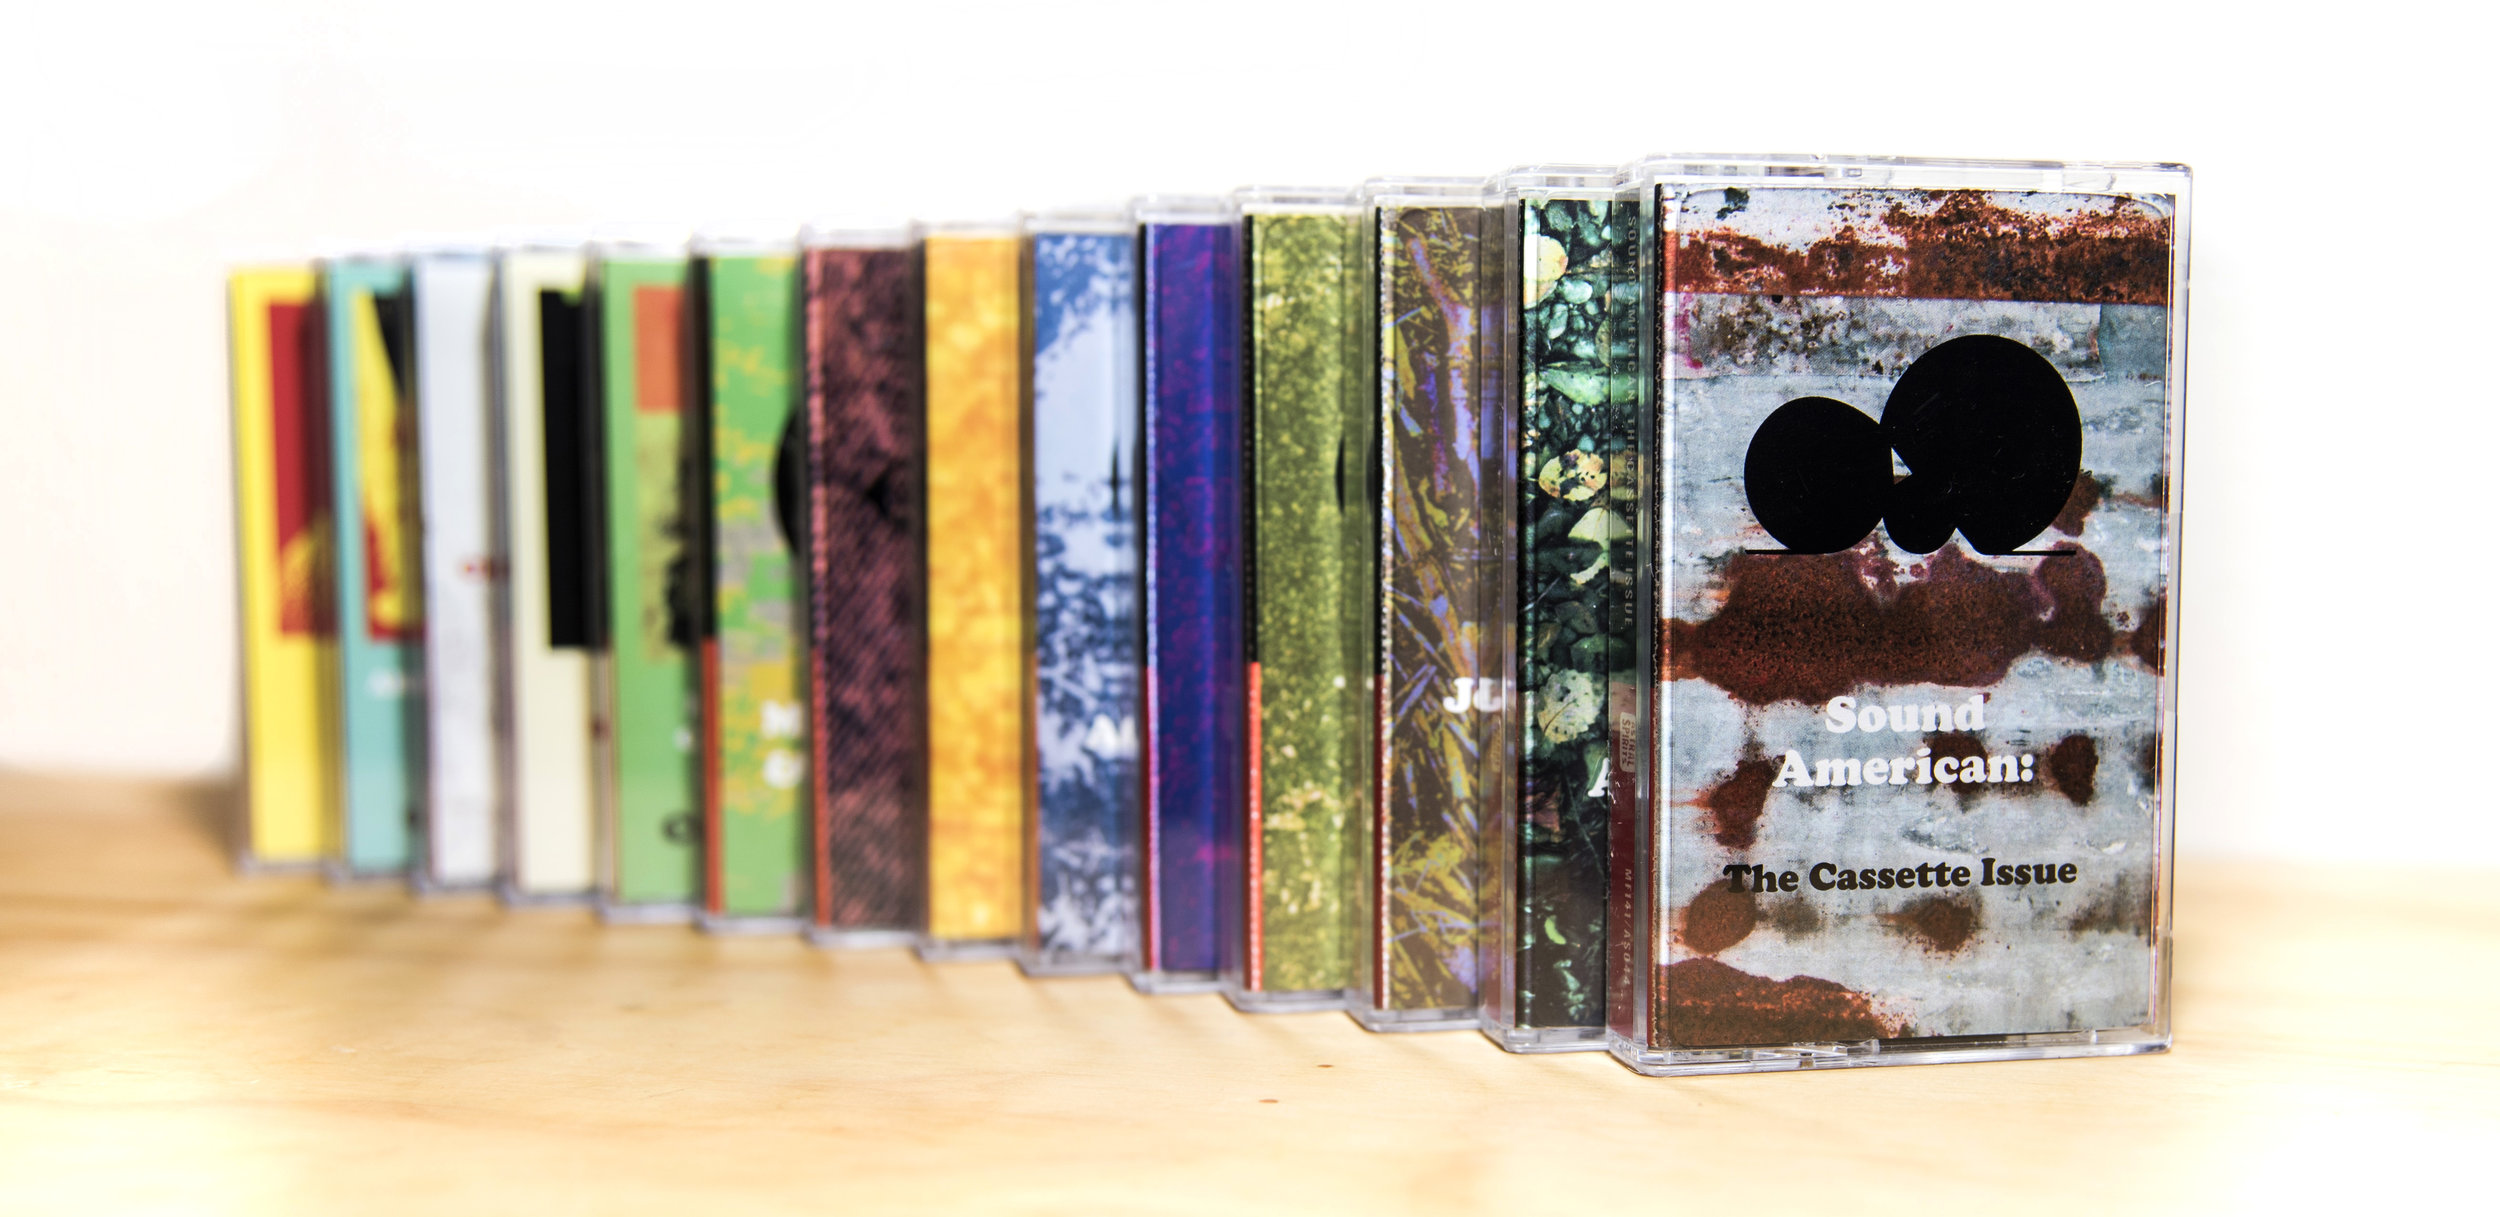 2017 Tape Releases. Photo by Nick Laroche. Tape design & layout by Mason McFee.